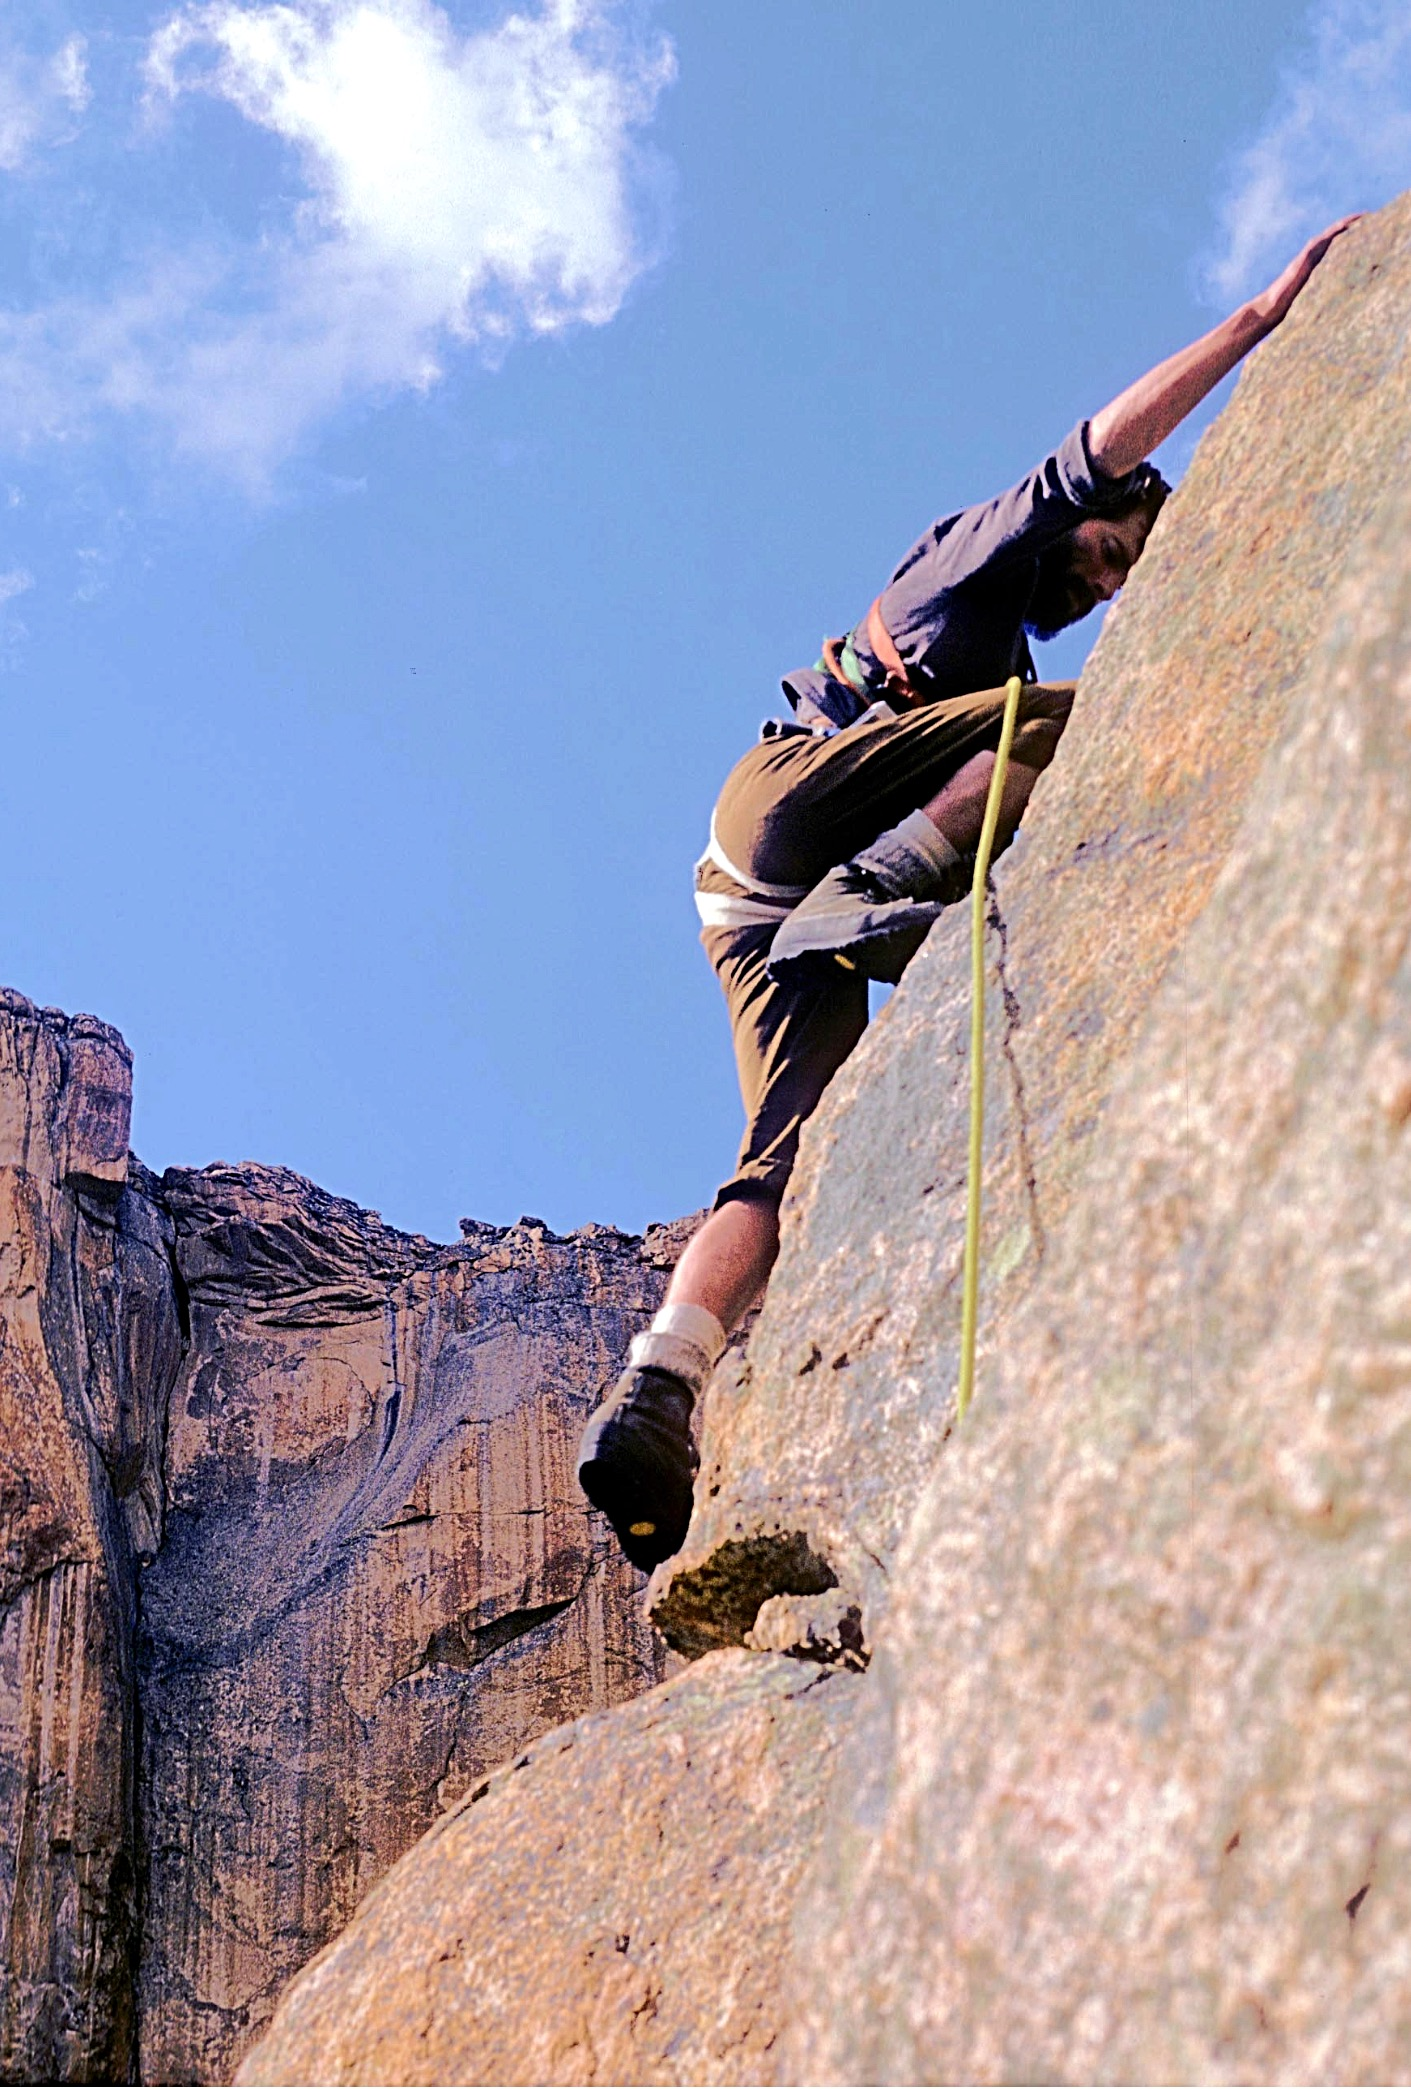 Harry climbing above. Ray Brooks Photo